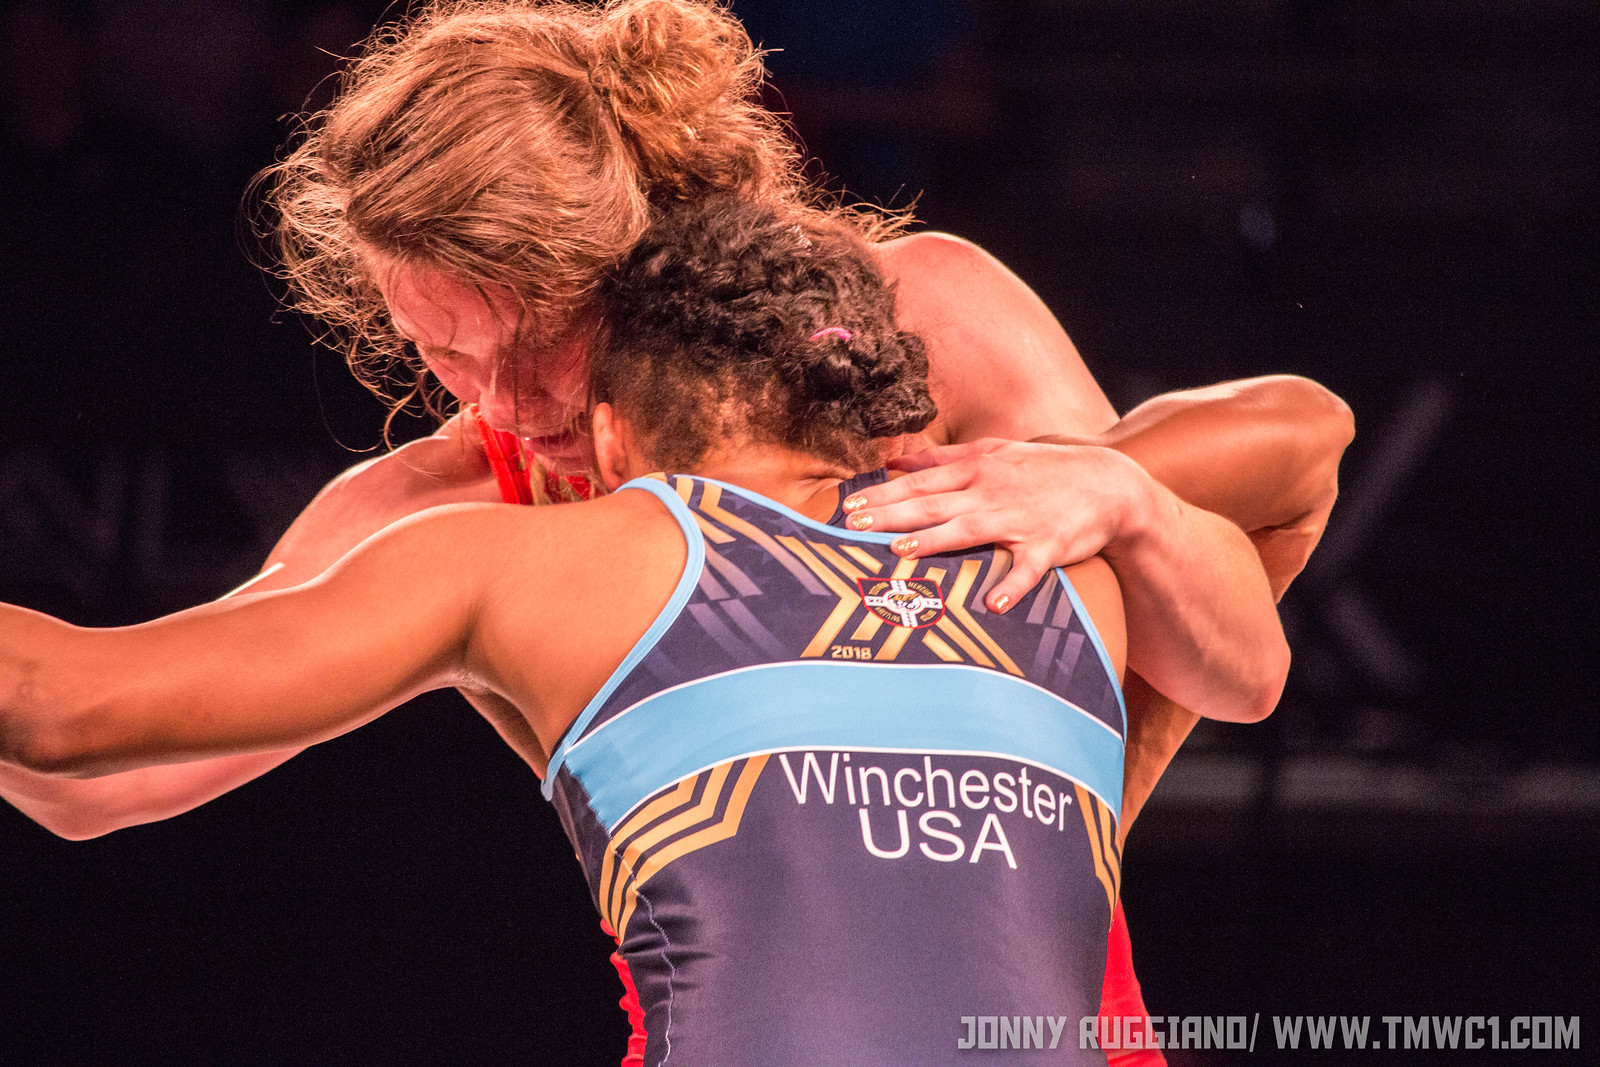 TMWC US Open preview: Women's 55 kg